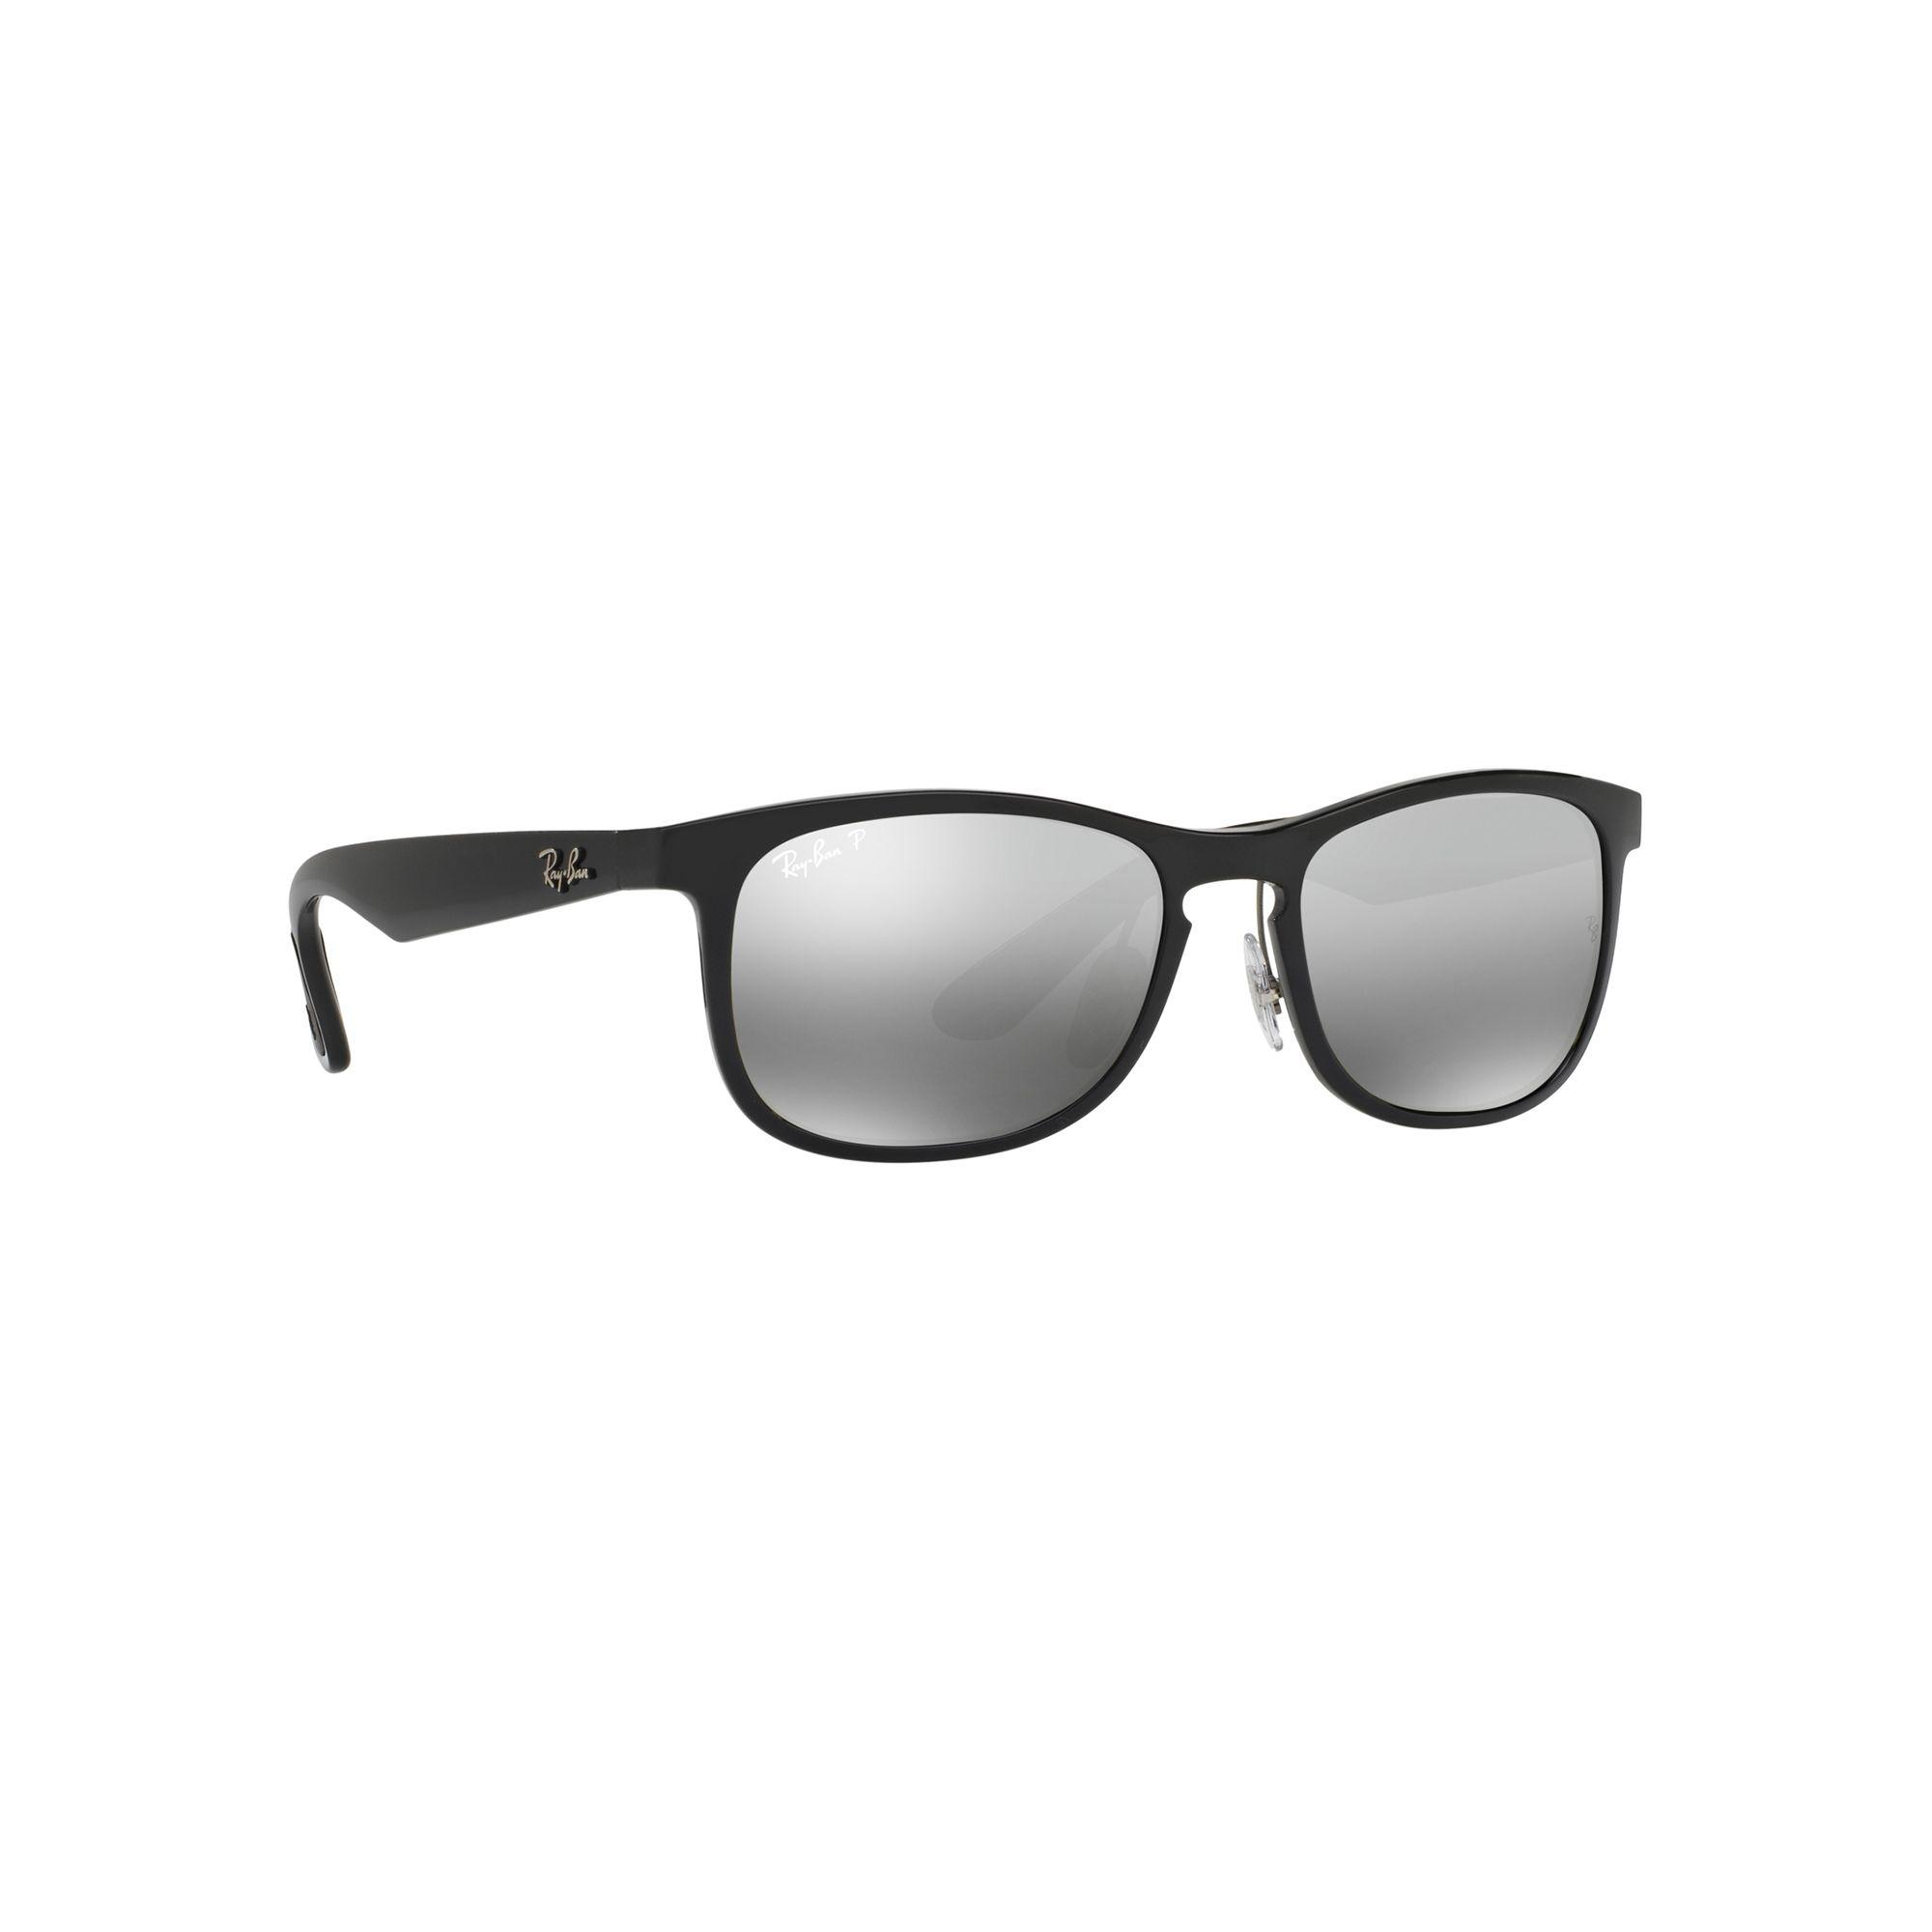 c46a3da35321c Ray-Ban Shiny Black Rb4263 Square Sunglasses in Black for Men - Lyst